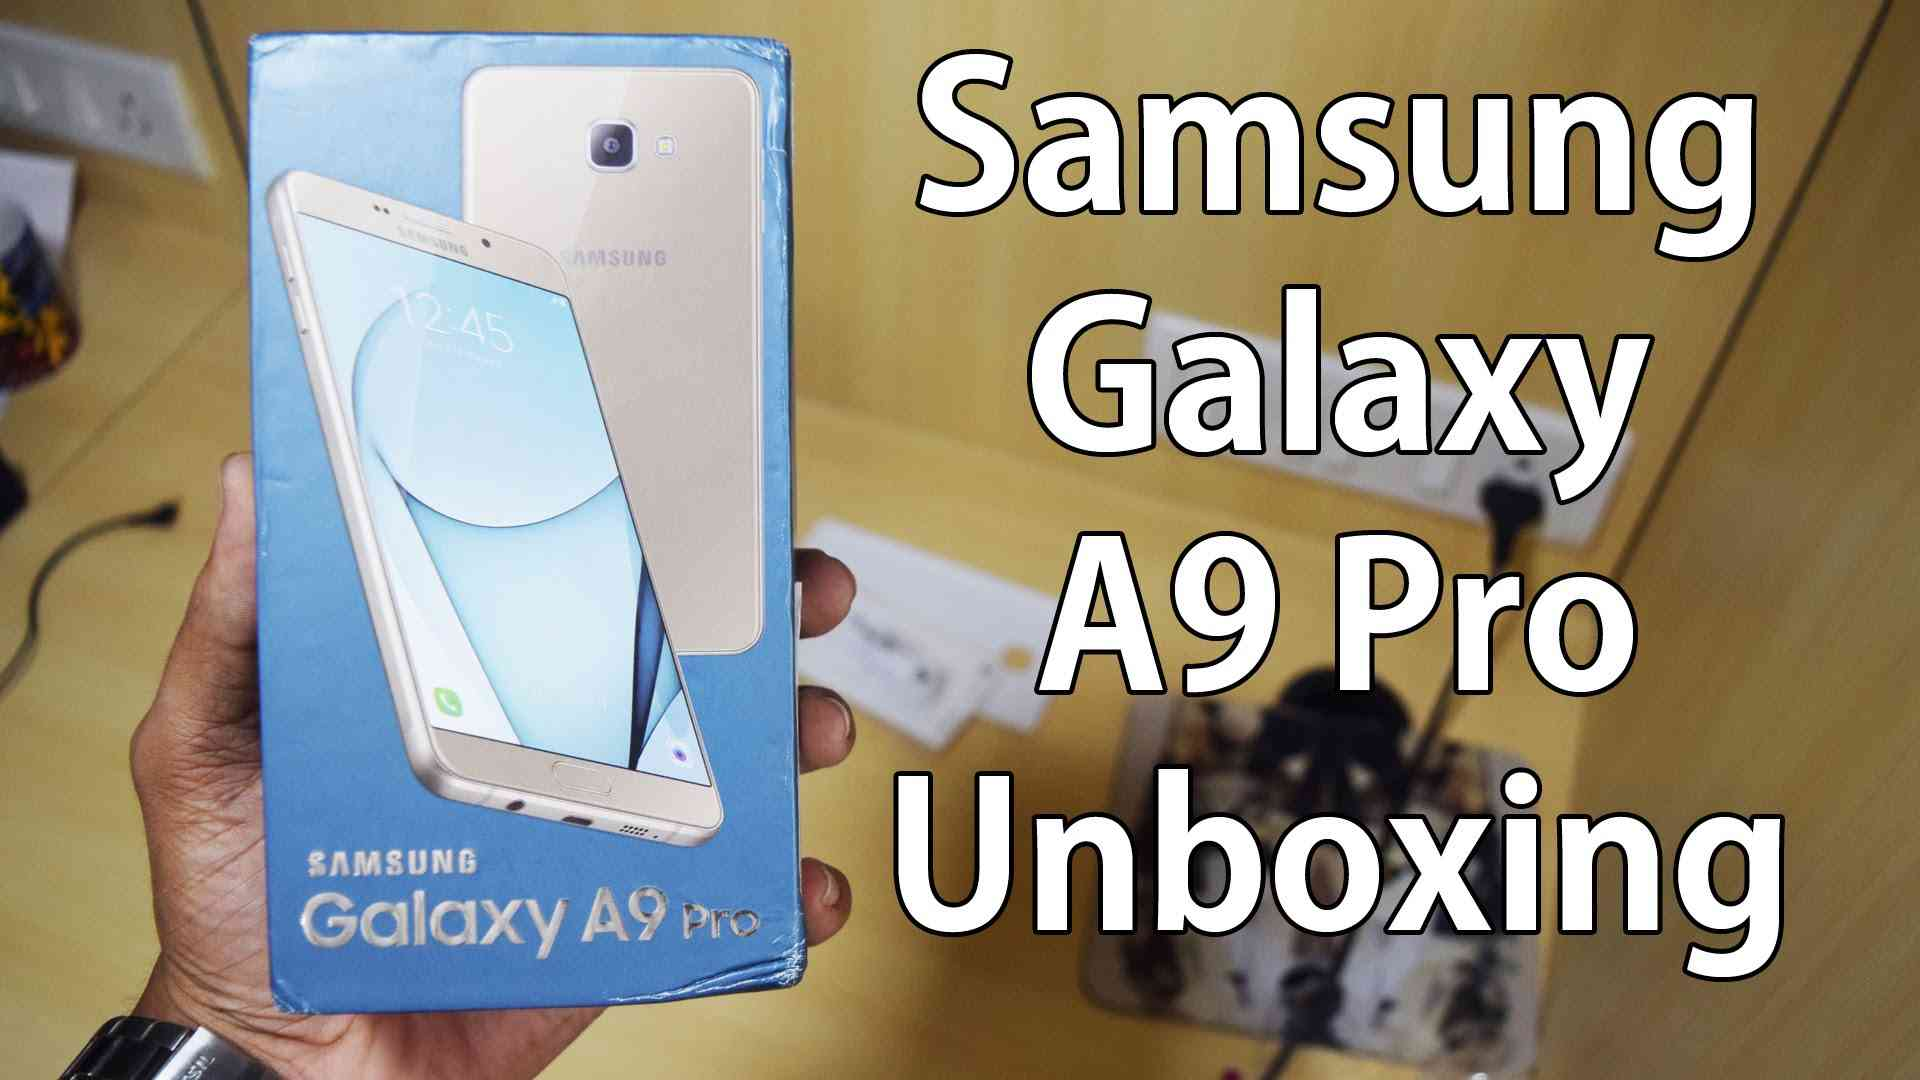 Samsung Galaxy A9 Pro Unboxing & Comparison with S7 Edge